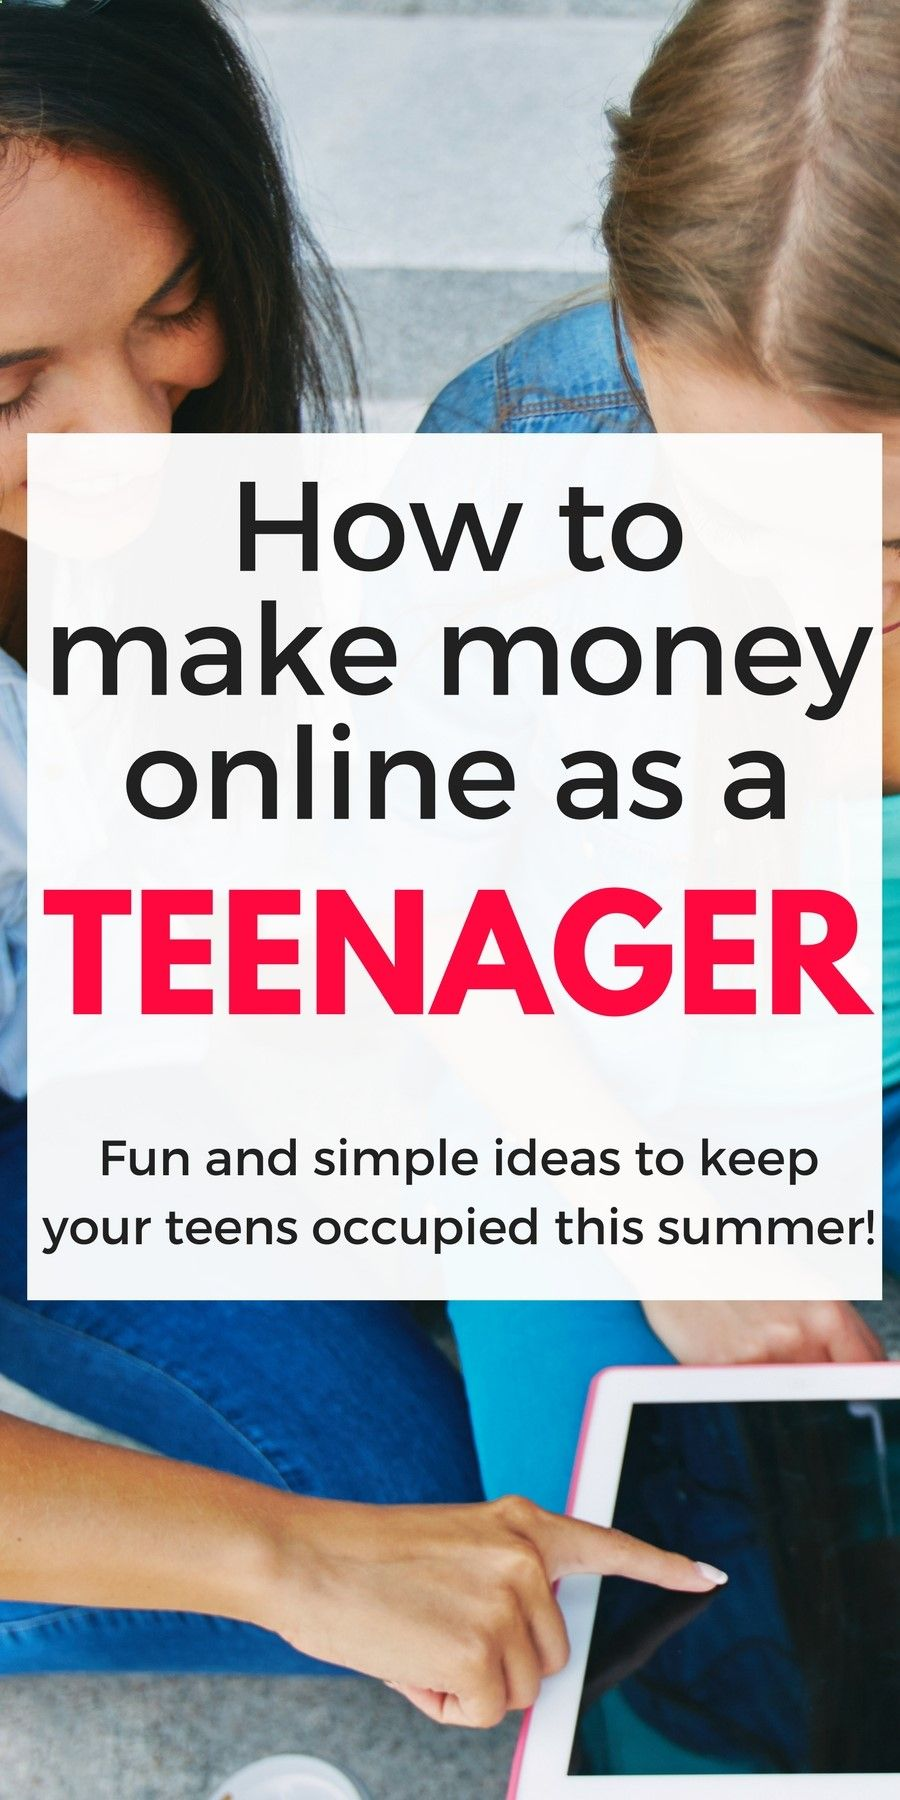 Ways for teens to make money online